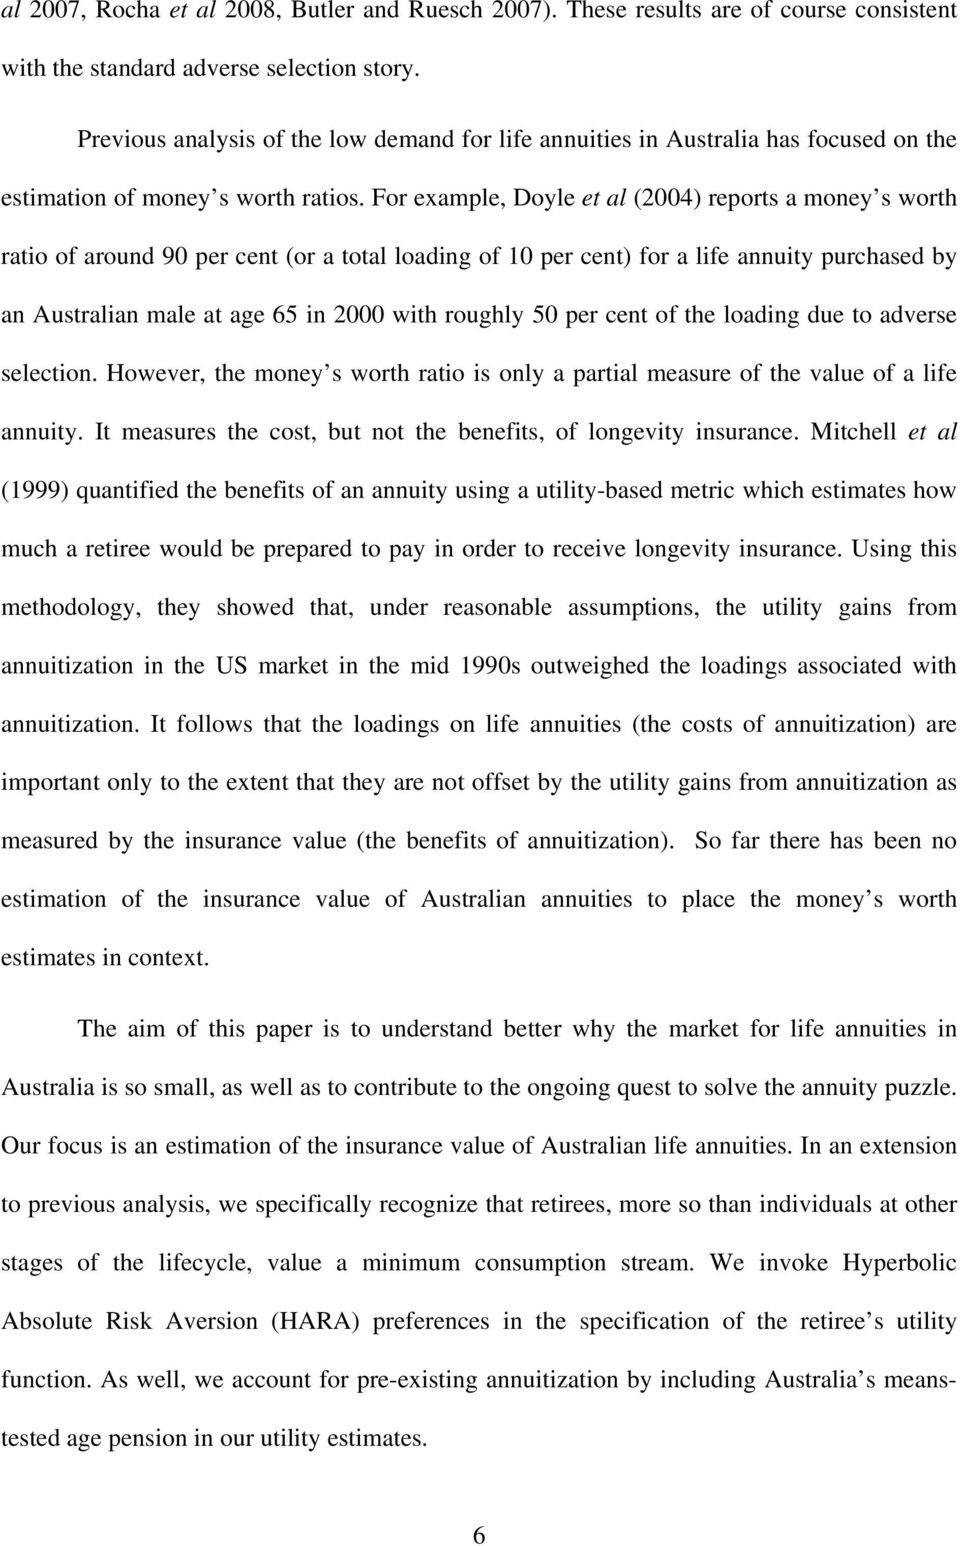 For example, Doyle et al (2004) reports a money s worth ratio of around 90 per cent (or a total loading of 10 per cent) for a life annuity purchased by an Australian male at age 65 in 2000 with